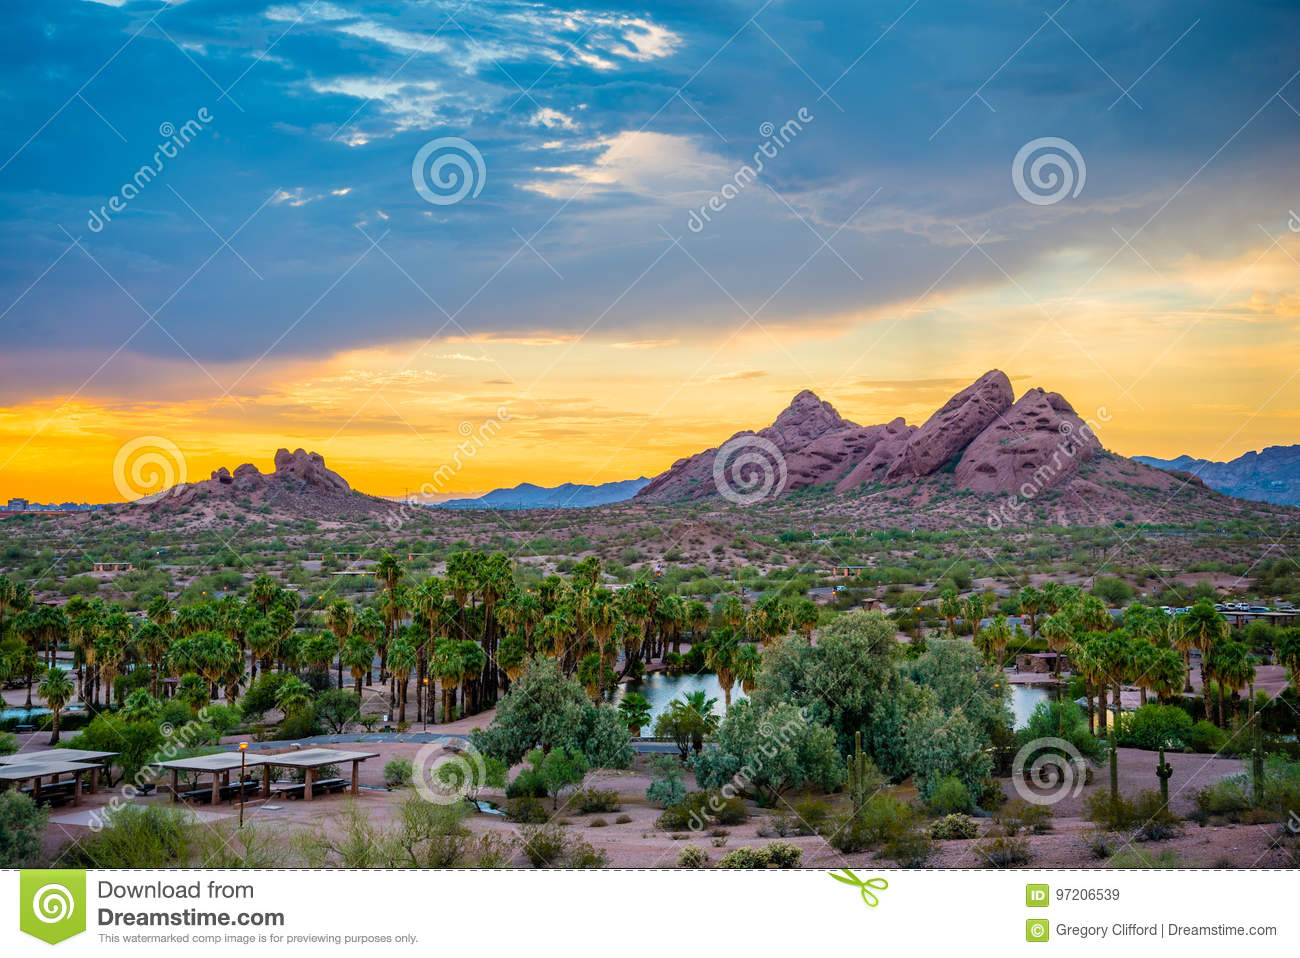 Papago Park at Sunset stock image. Image of against, butte - 97206539